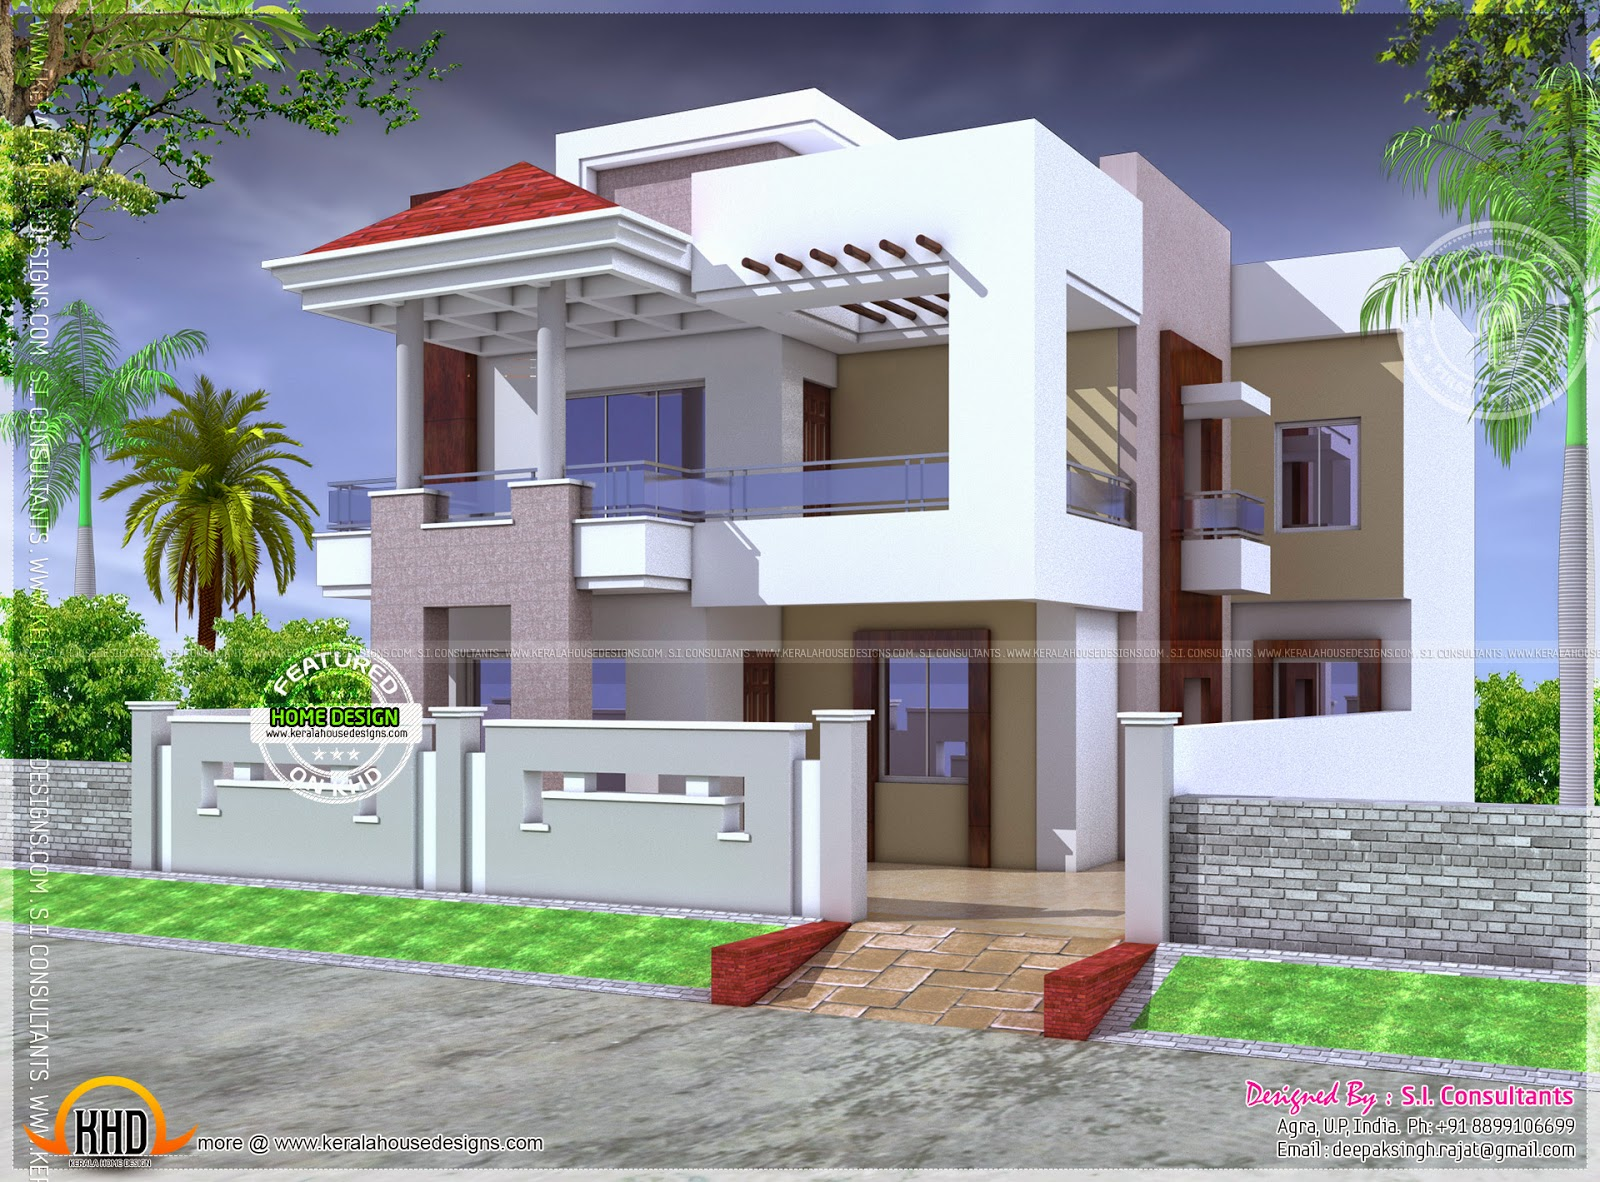 House designs of Mar